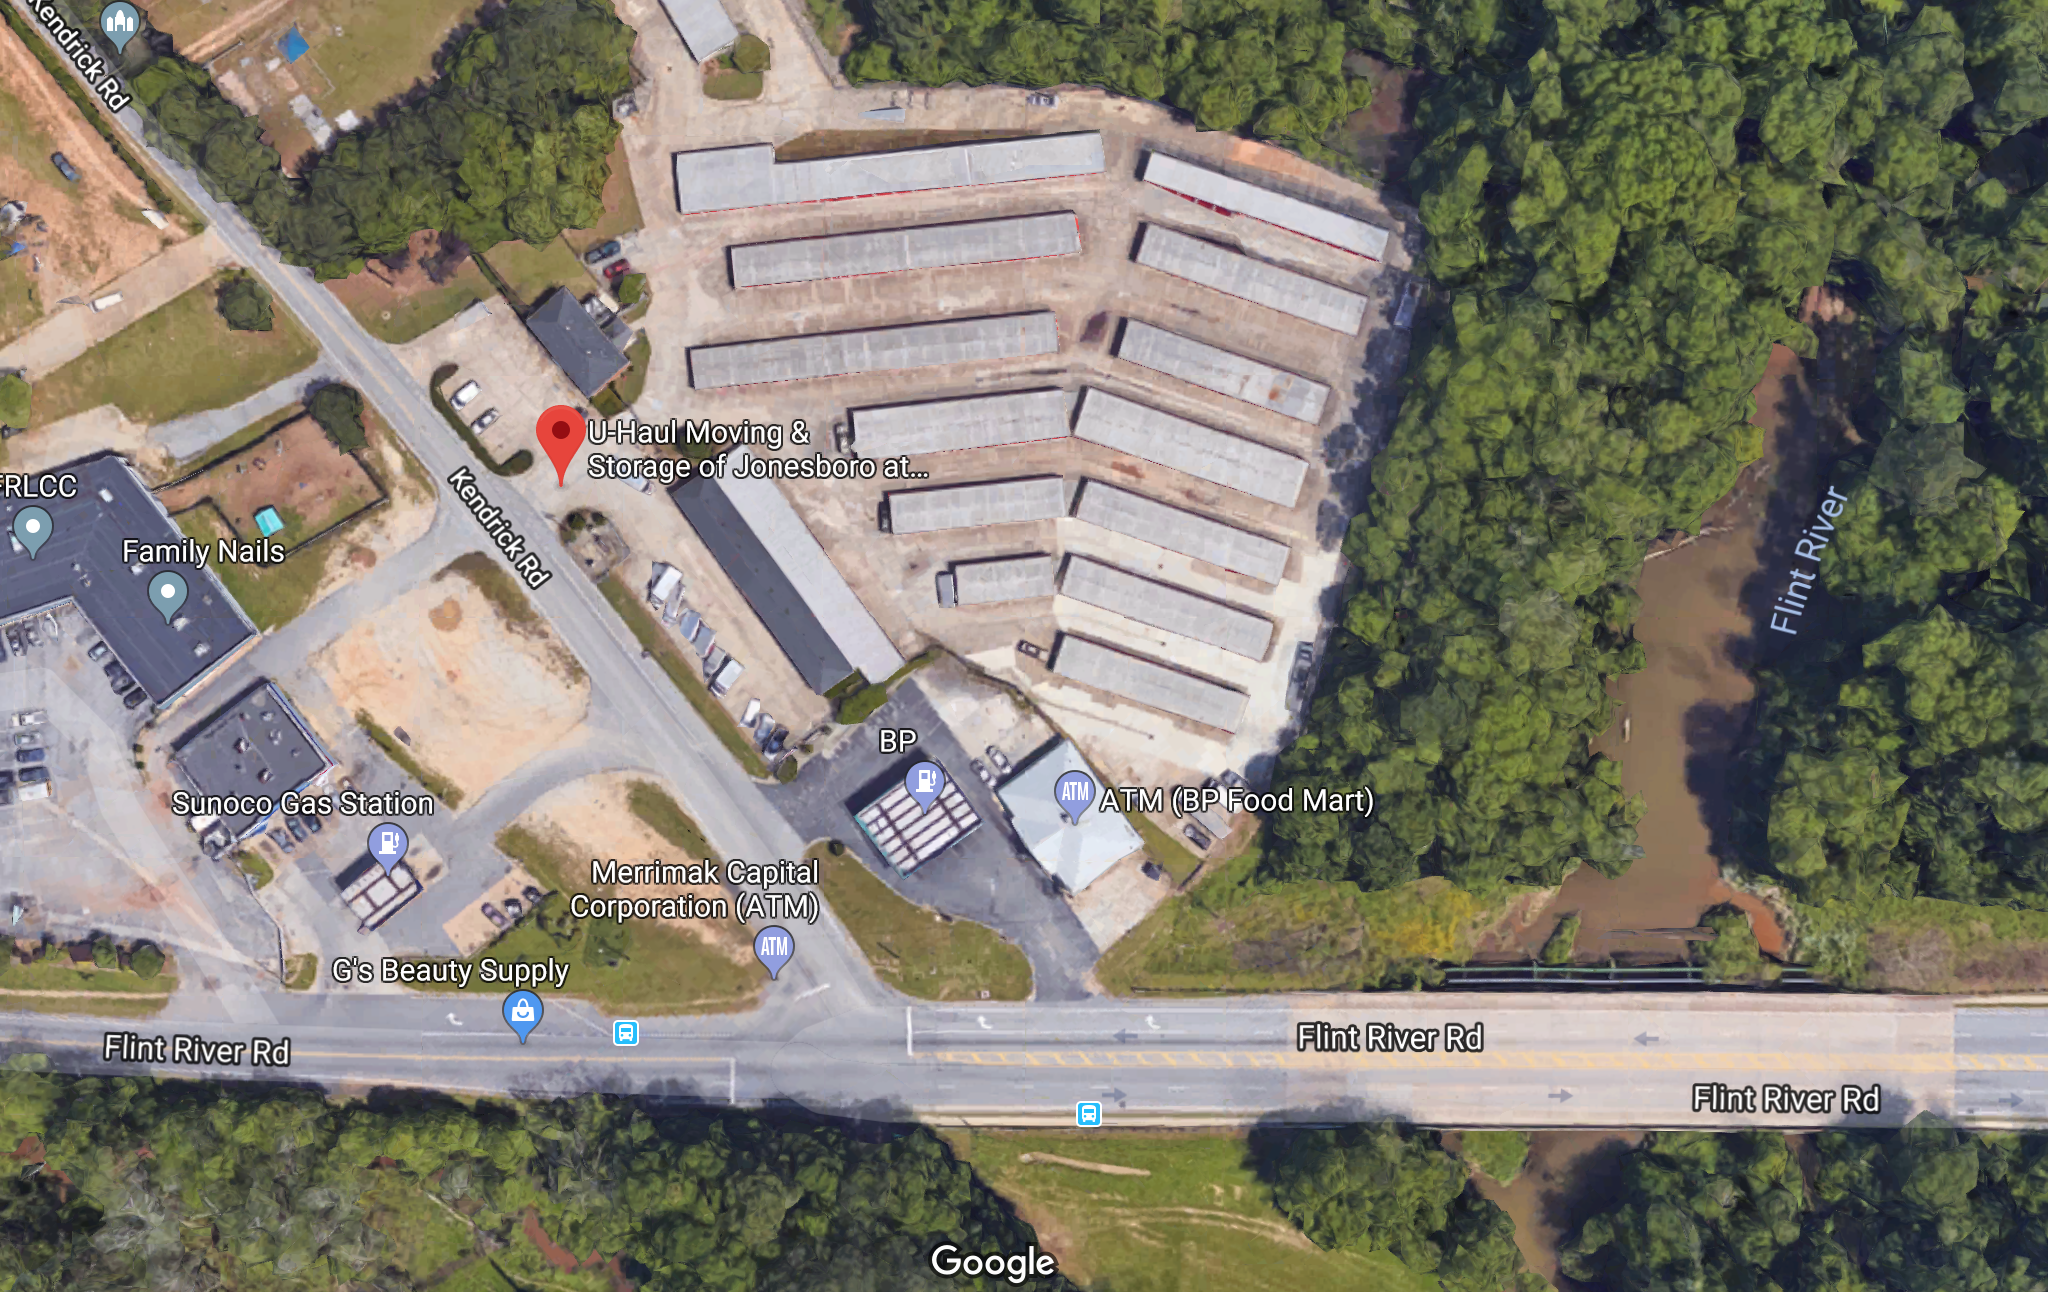 Google Maps view of the storage business